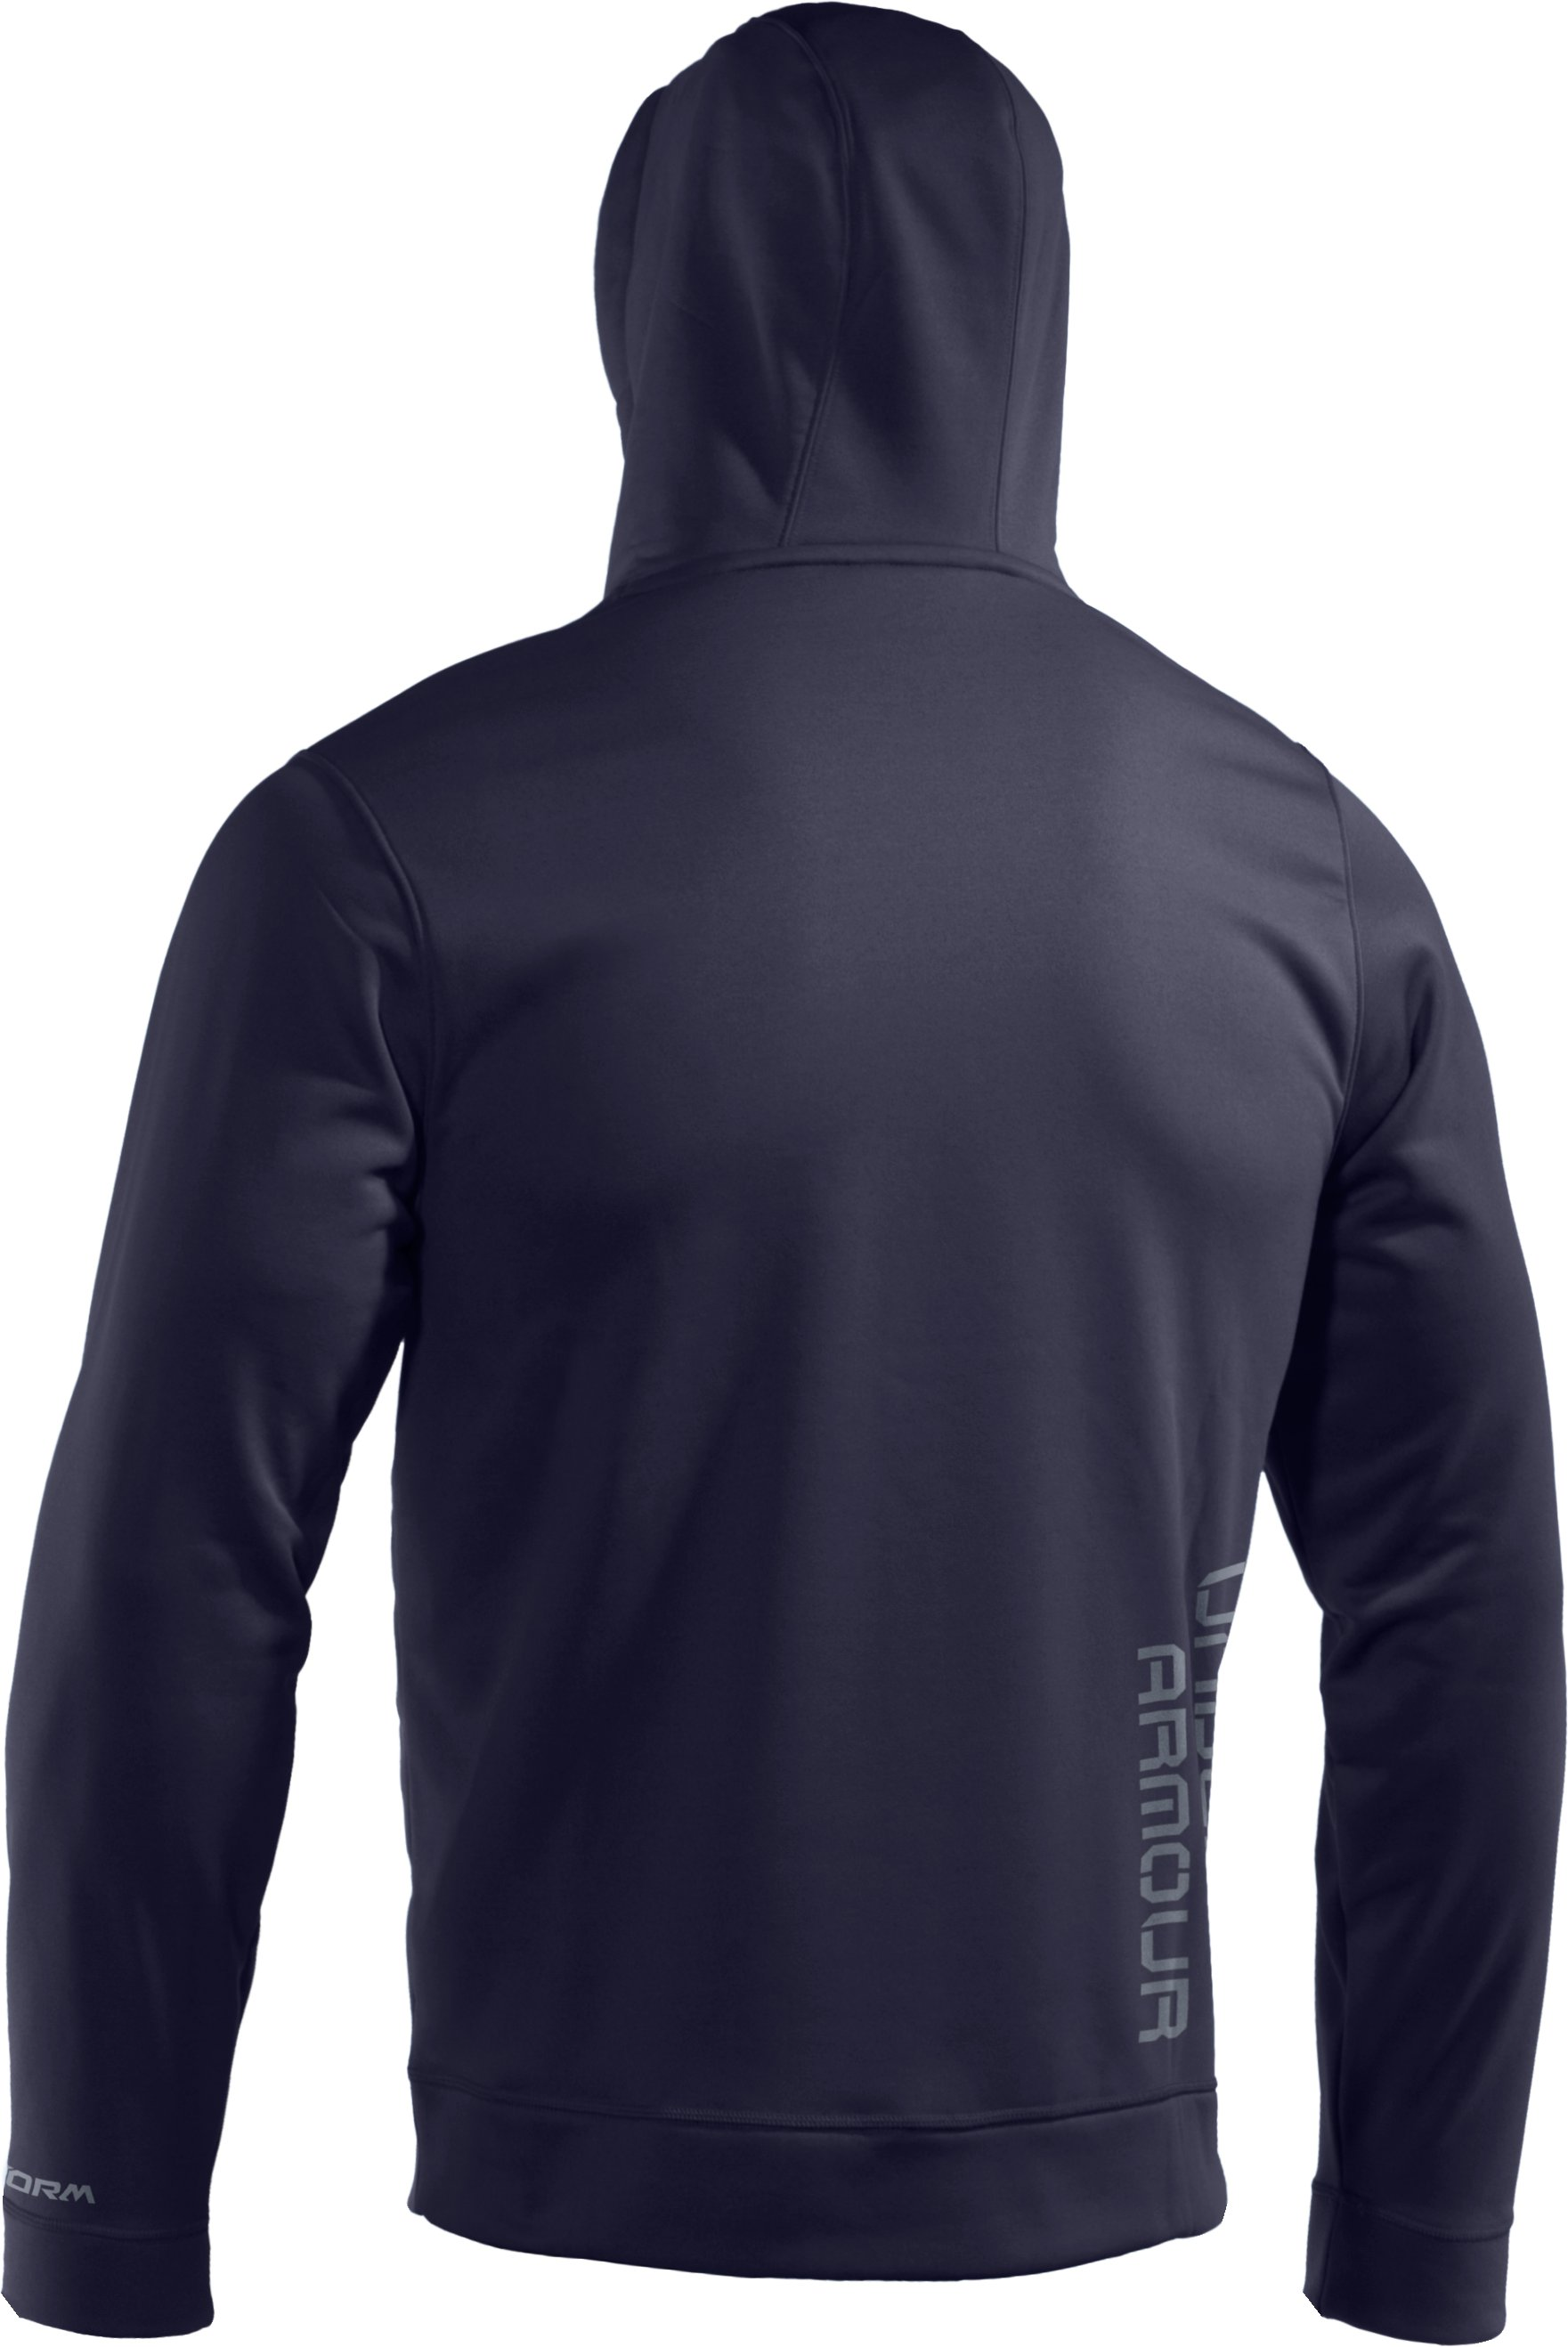 Men's Armour® Fleece Storm Big Logo Hoodie, Midnight Navy